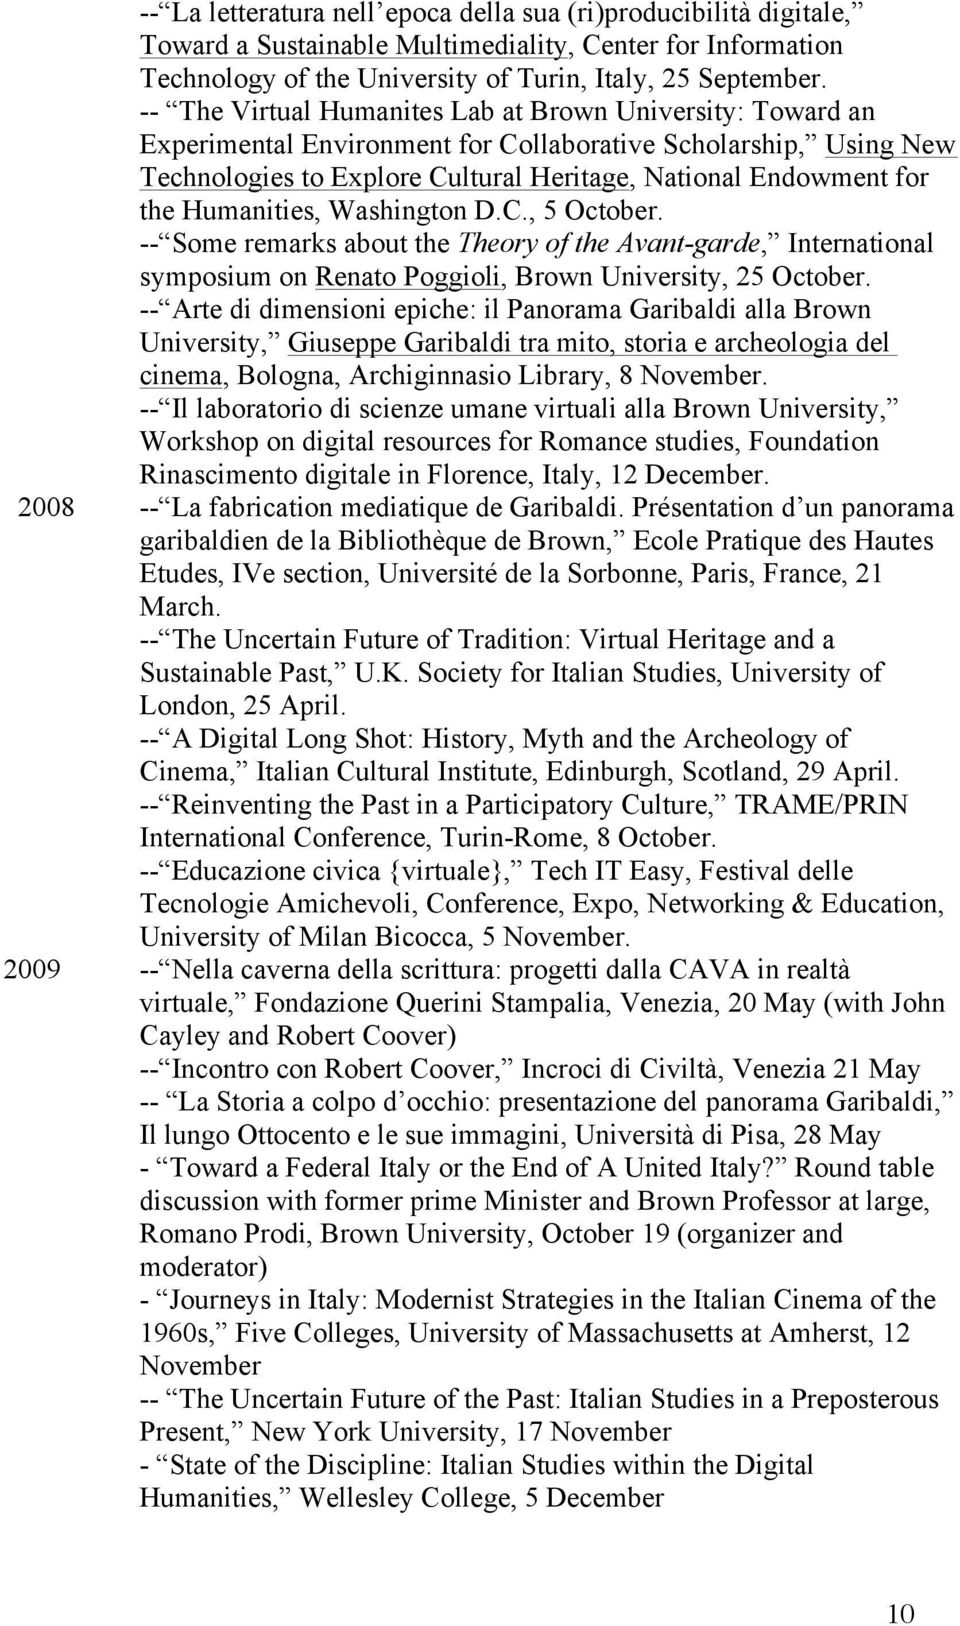 Humanities, Washington D.C., 5 October. -- Some remarks about the Theory of the Avant-garde, International symposium on Renato Poggioli, Brown University, 25 October.